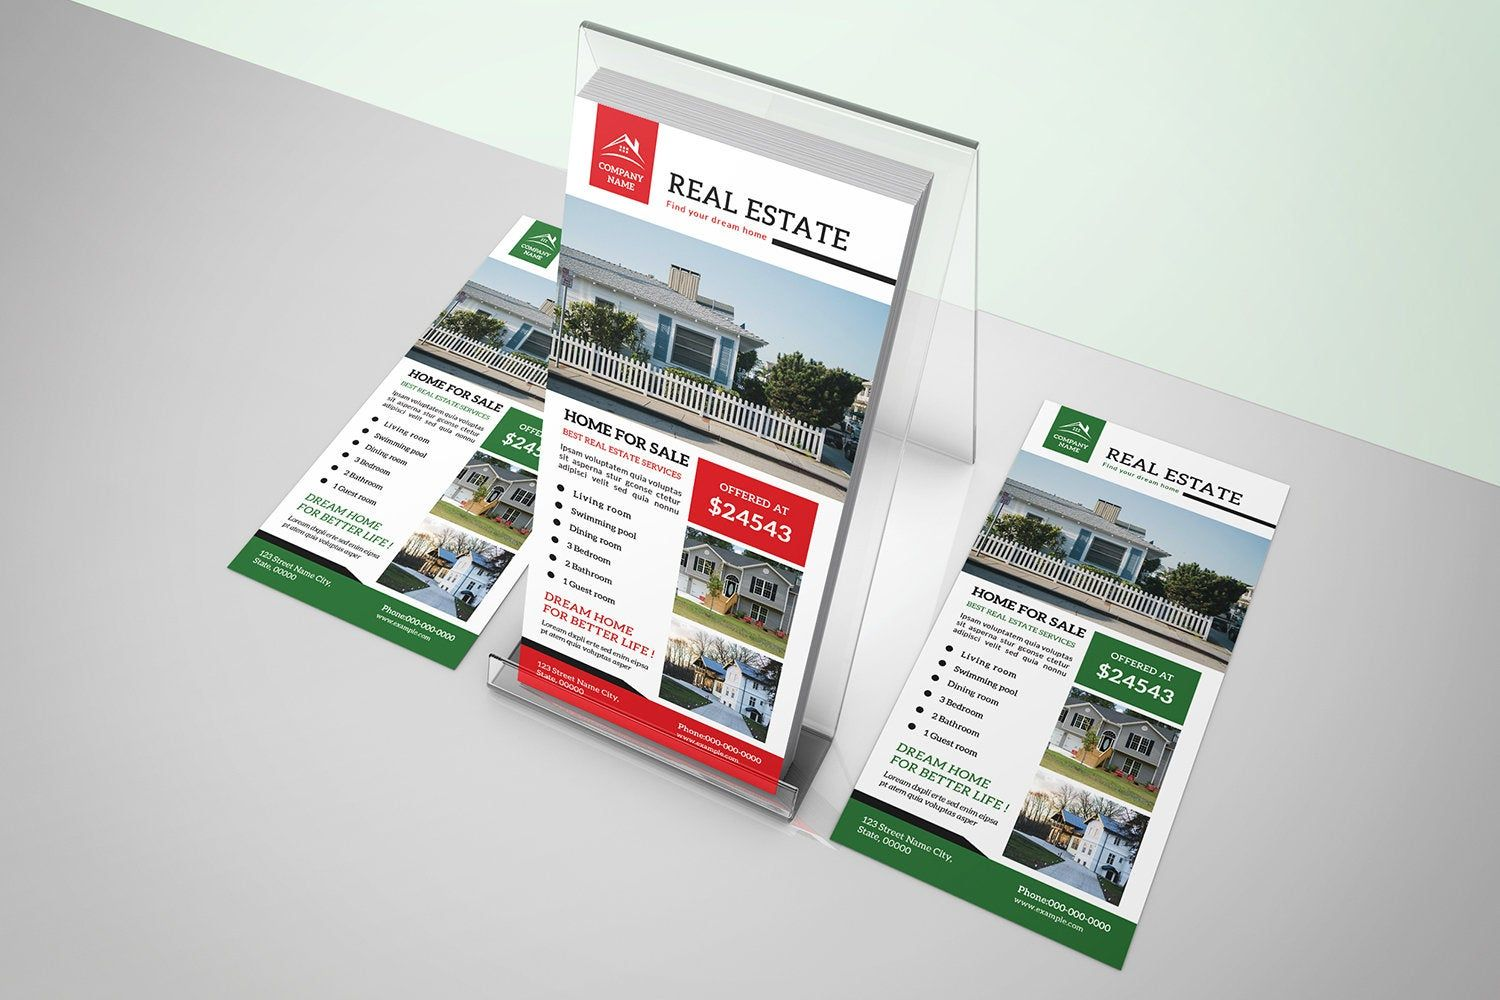 Real Estate Rack Card Template 4x9 In Photoshop Template Instant Download Flaery Remesla